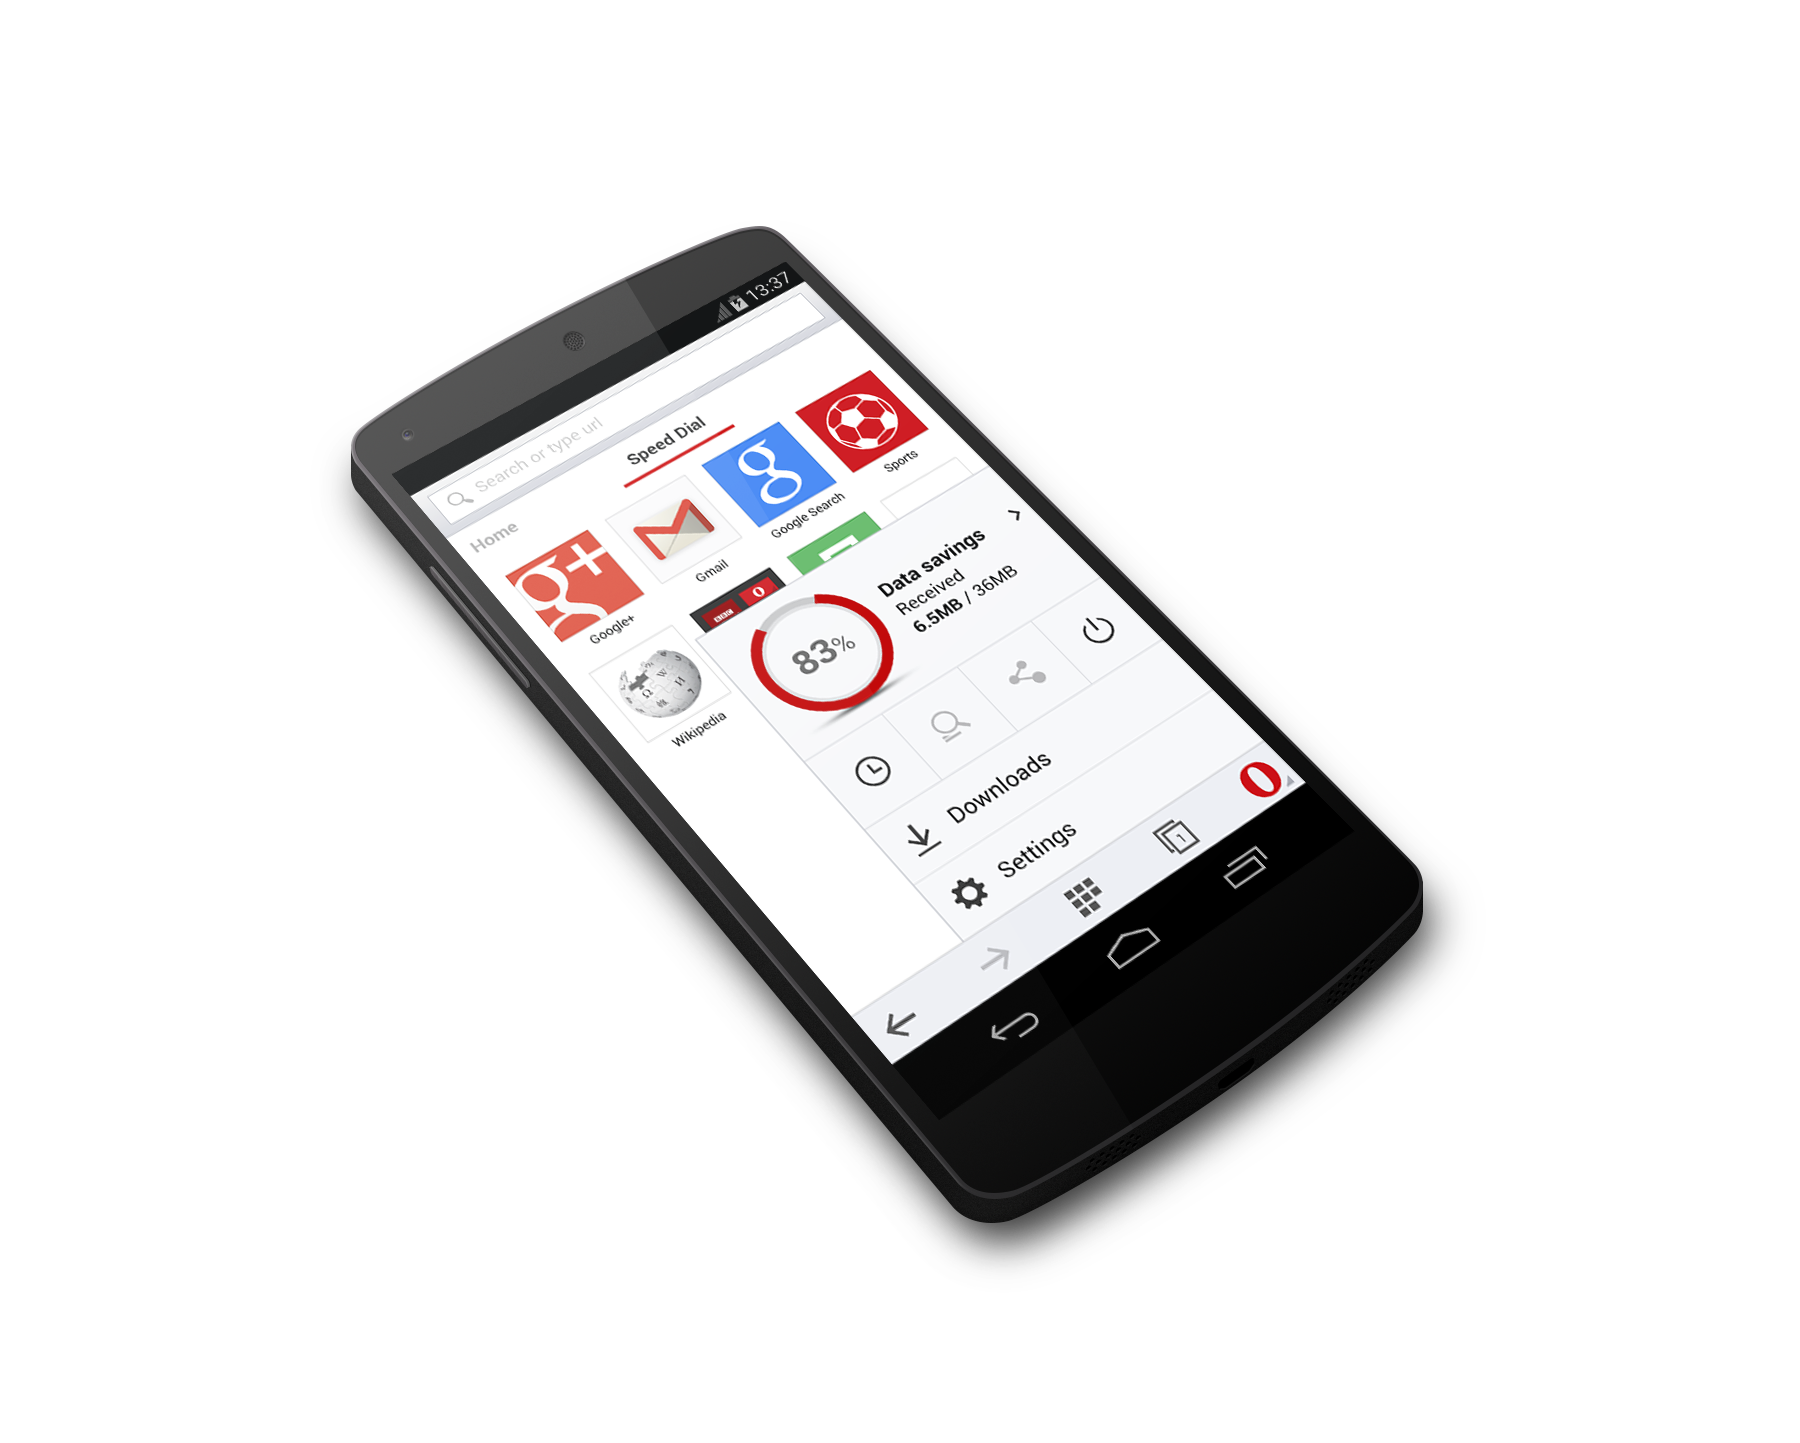 Phone Opera Mini For Android Phones opera mini for android beta runs on 2 3 and higher beta